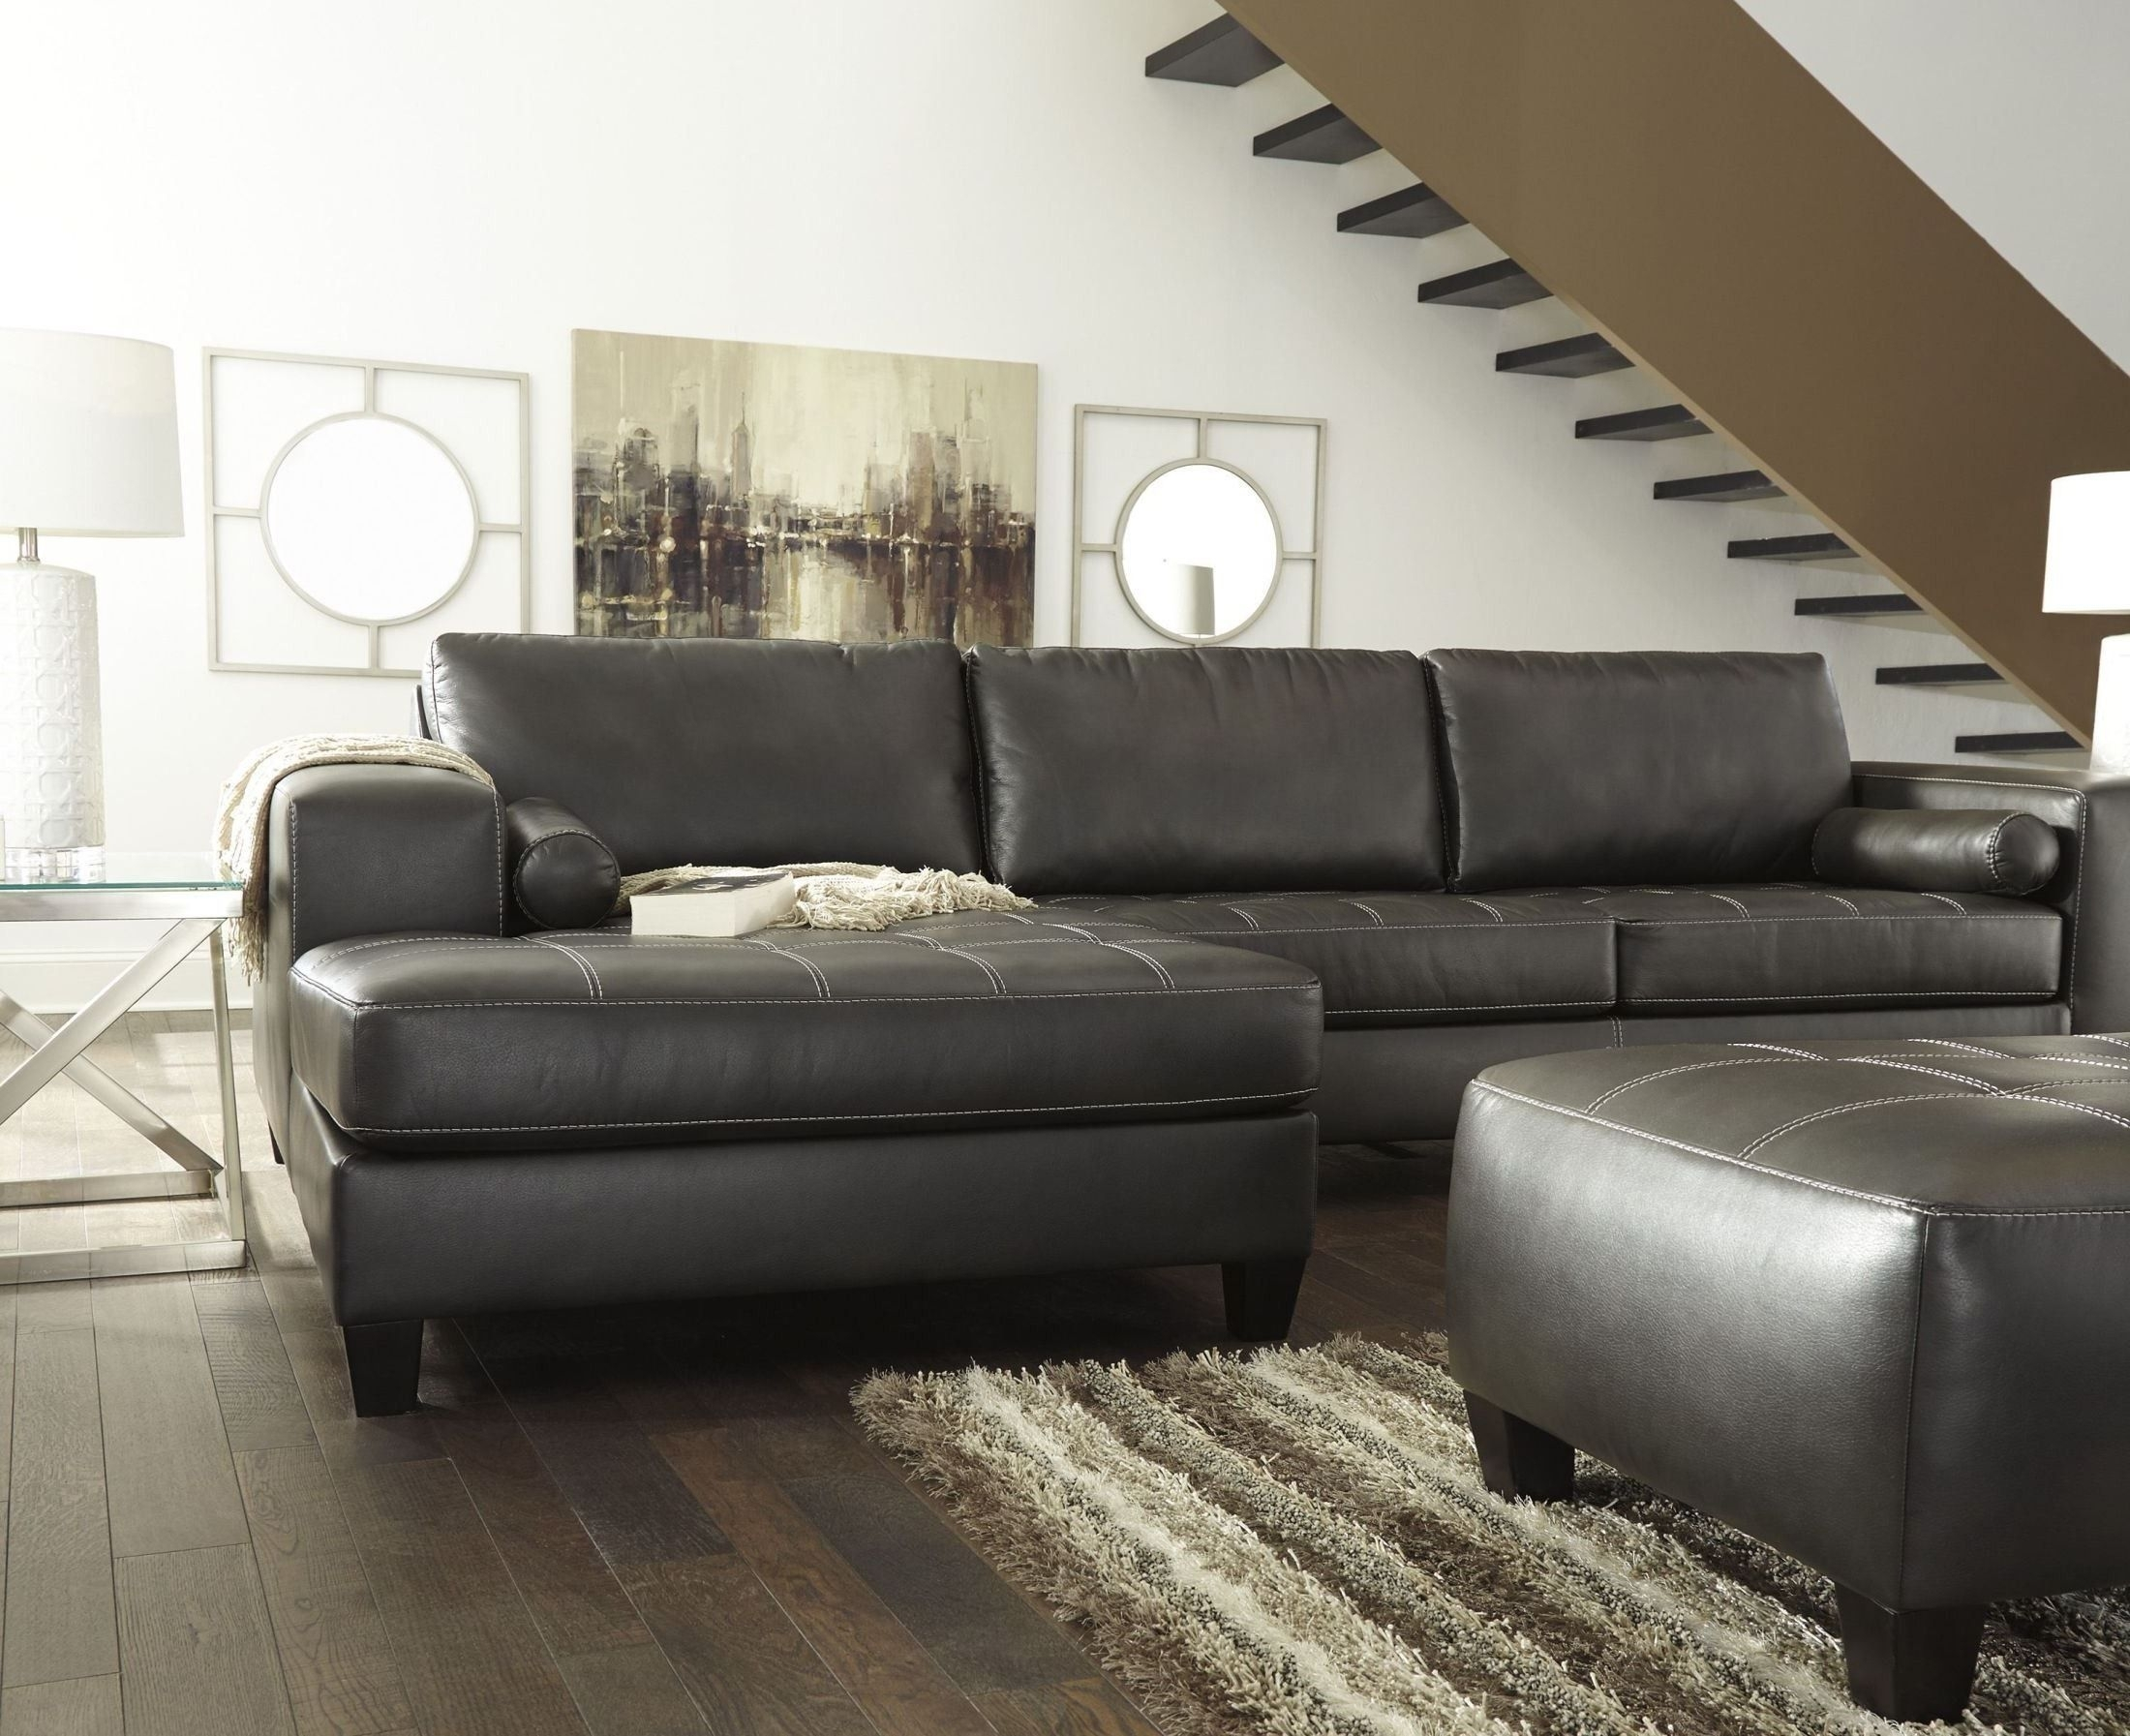 American Eagle Furniture Ek-Lb309-Dc Dark Chocolate Sofa C within Tenny Dark Grey 2 Piece Right Facing Chaise Sectionals With 2 Headrest (Image 6 of 30)